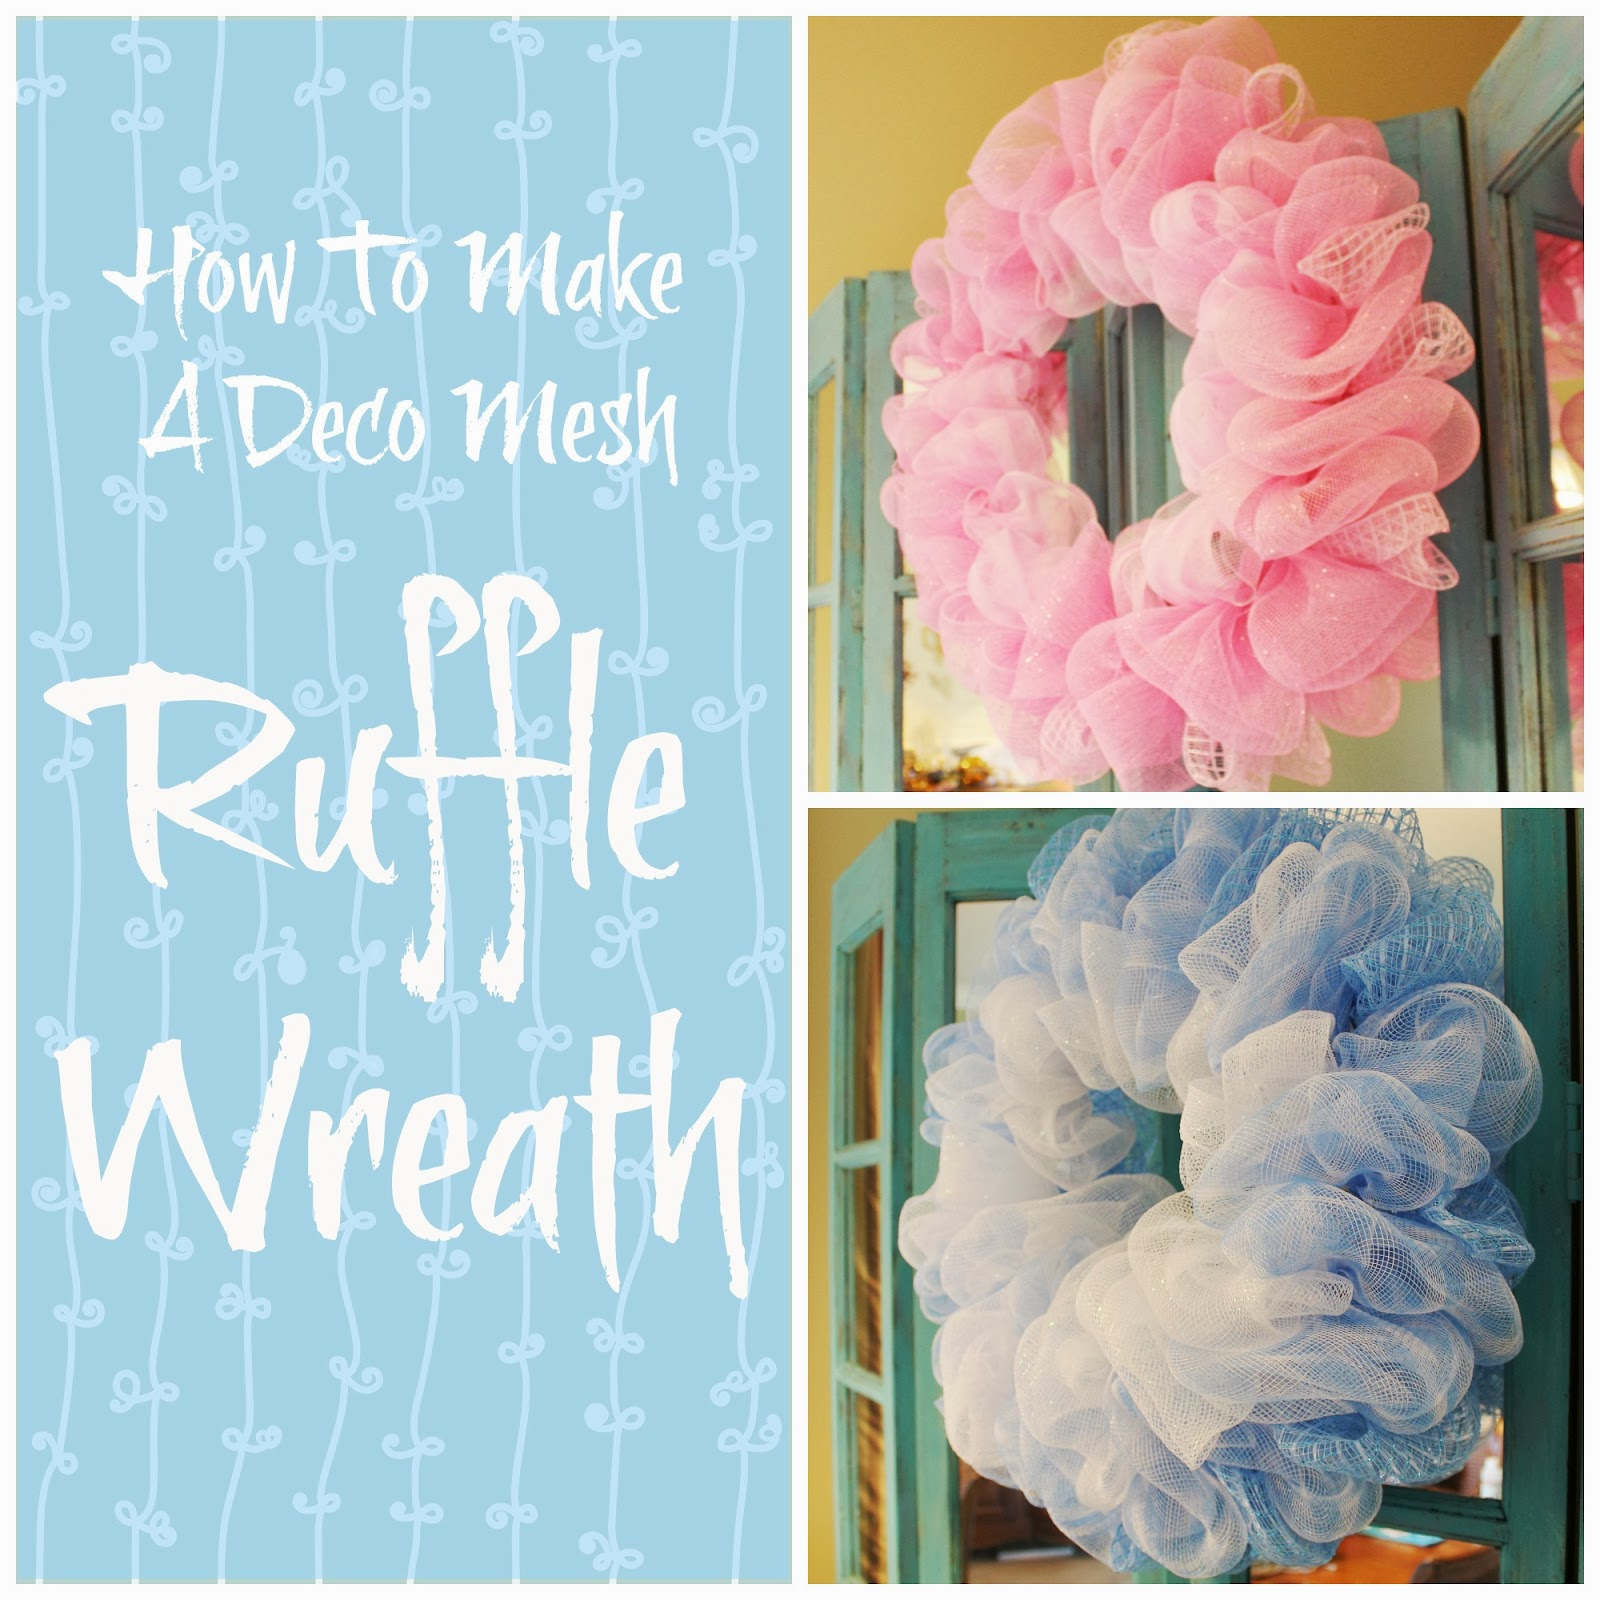 How to make a deco mesh ruffle wreath miss kopy kat how to make a deco mesh ruffle wreath baditri Gallery